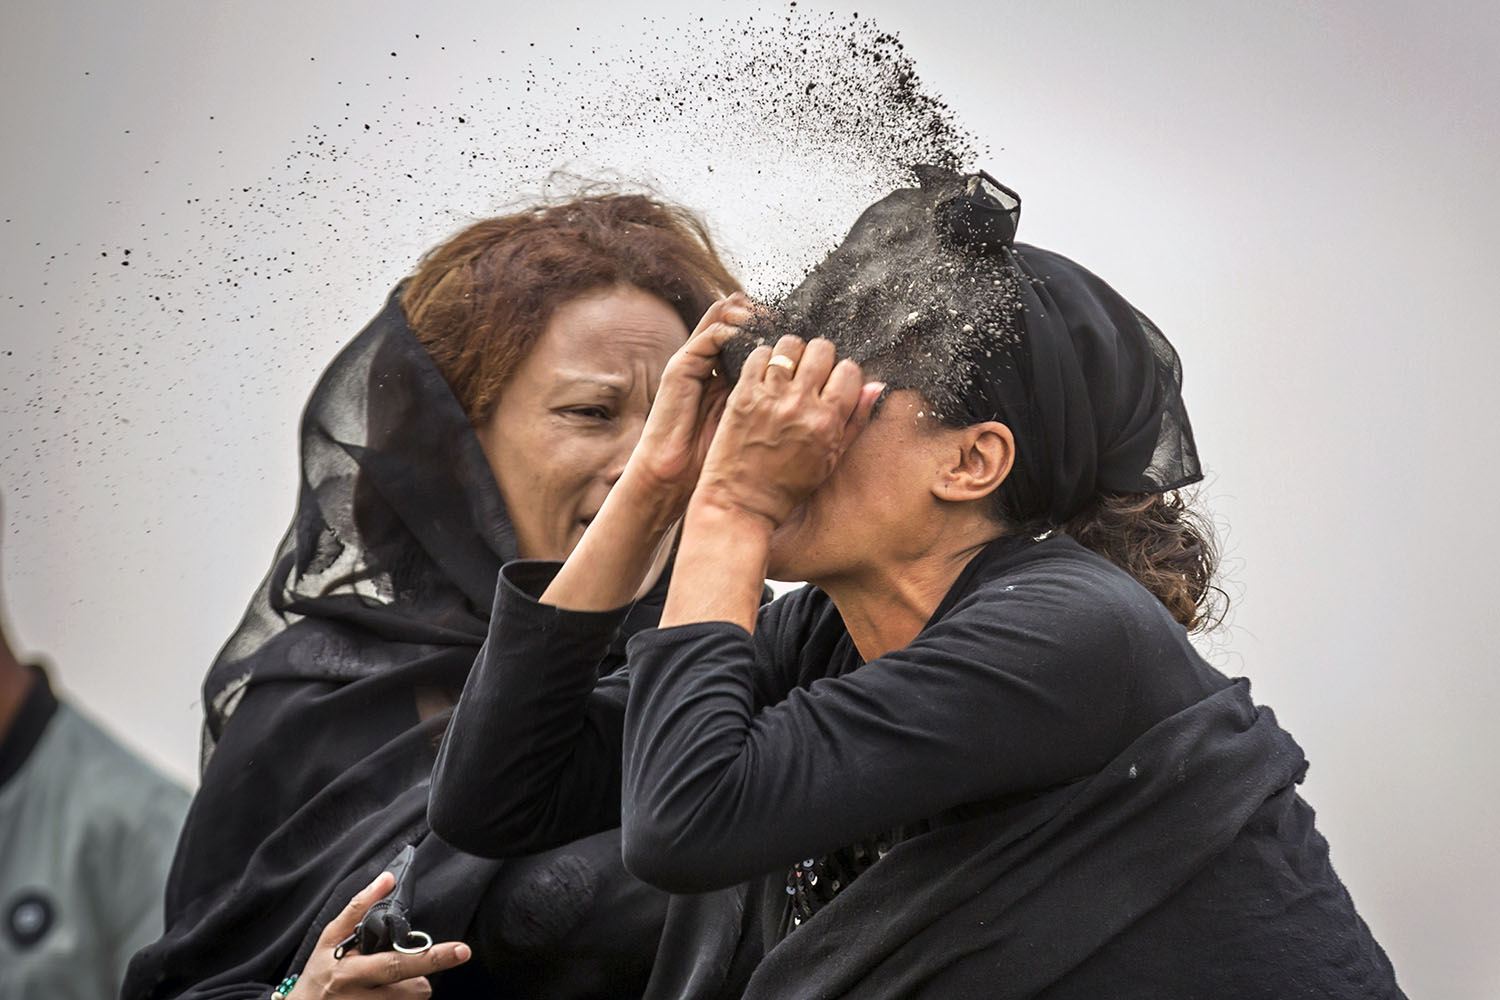 A relative of a plane crash victim throws dirt in her face as she mourns on March 14 at the site near Bishoftu where the Ethiopian Airlines Boeing 737 Max 8 crashed shortly after takeoff  killing all 157 on board. Mulugeta Ayene/AP